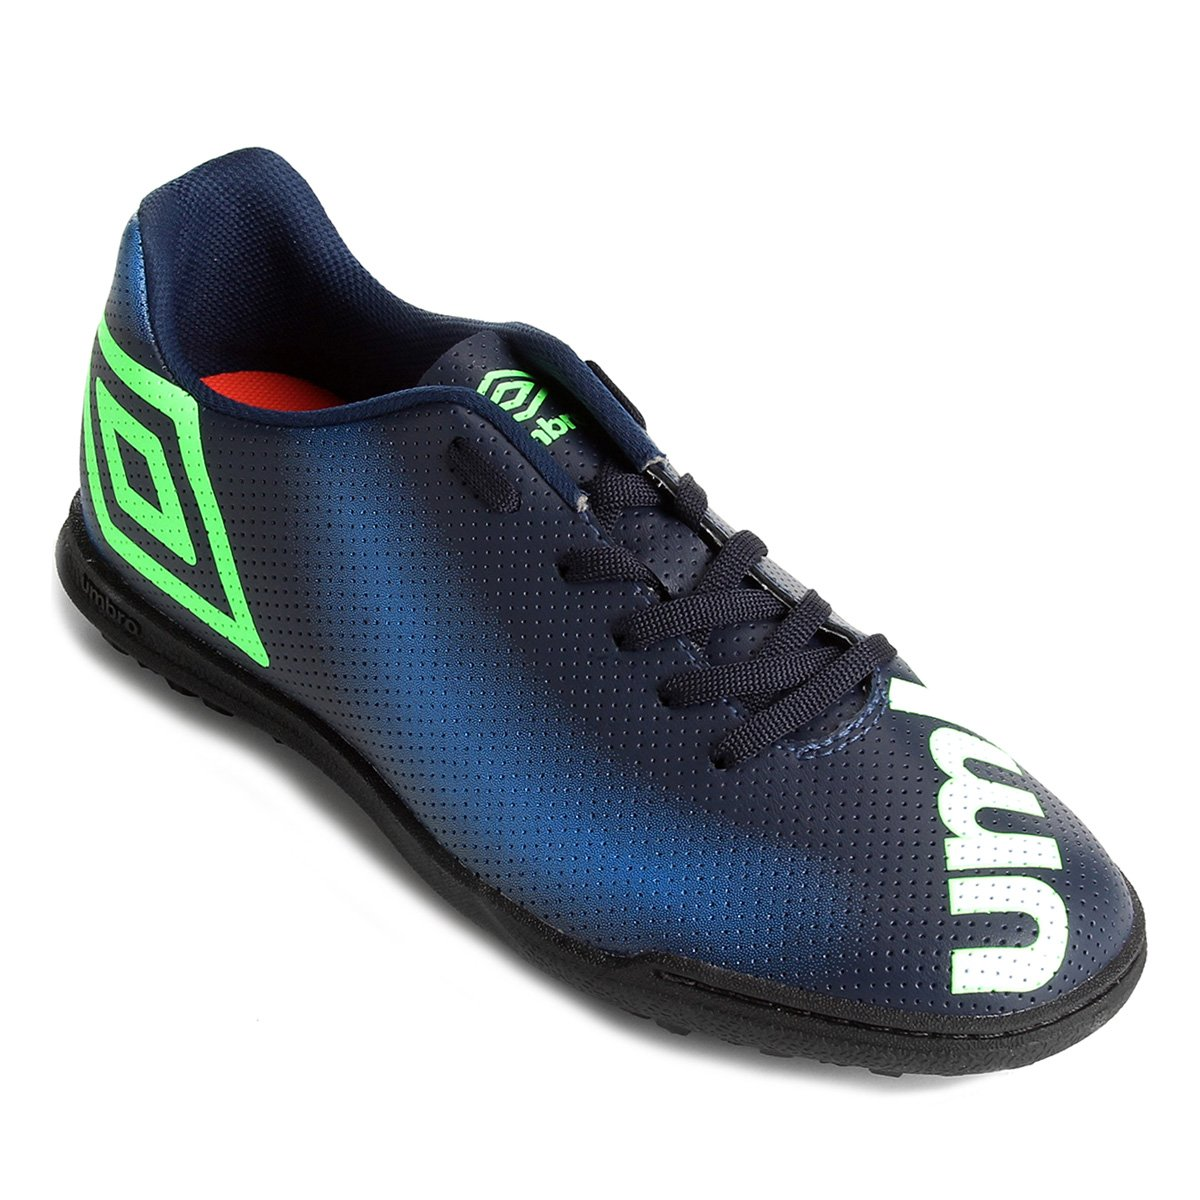 4cb179cbc337a Chuteira Society Umbro Spectrum | Allianz Parque Shop